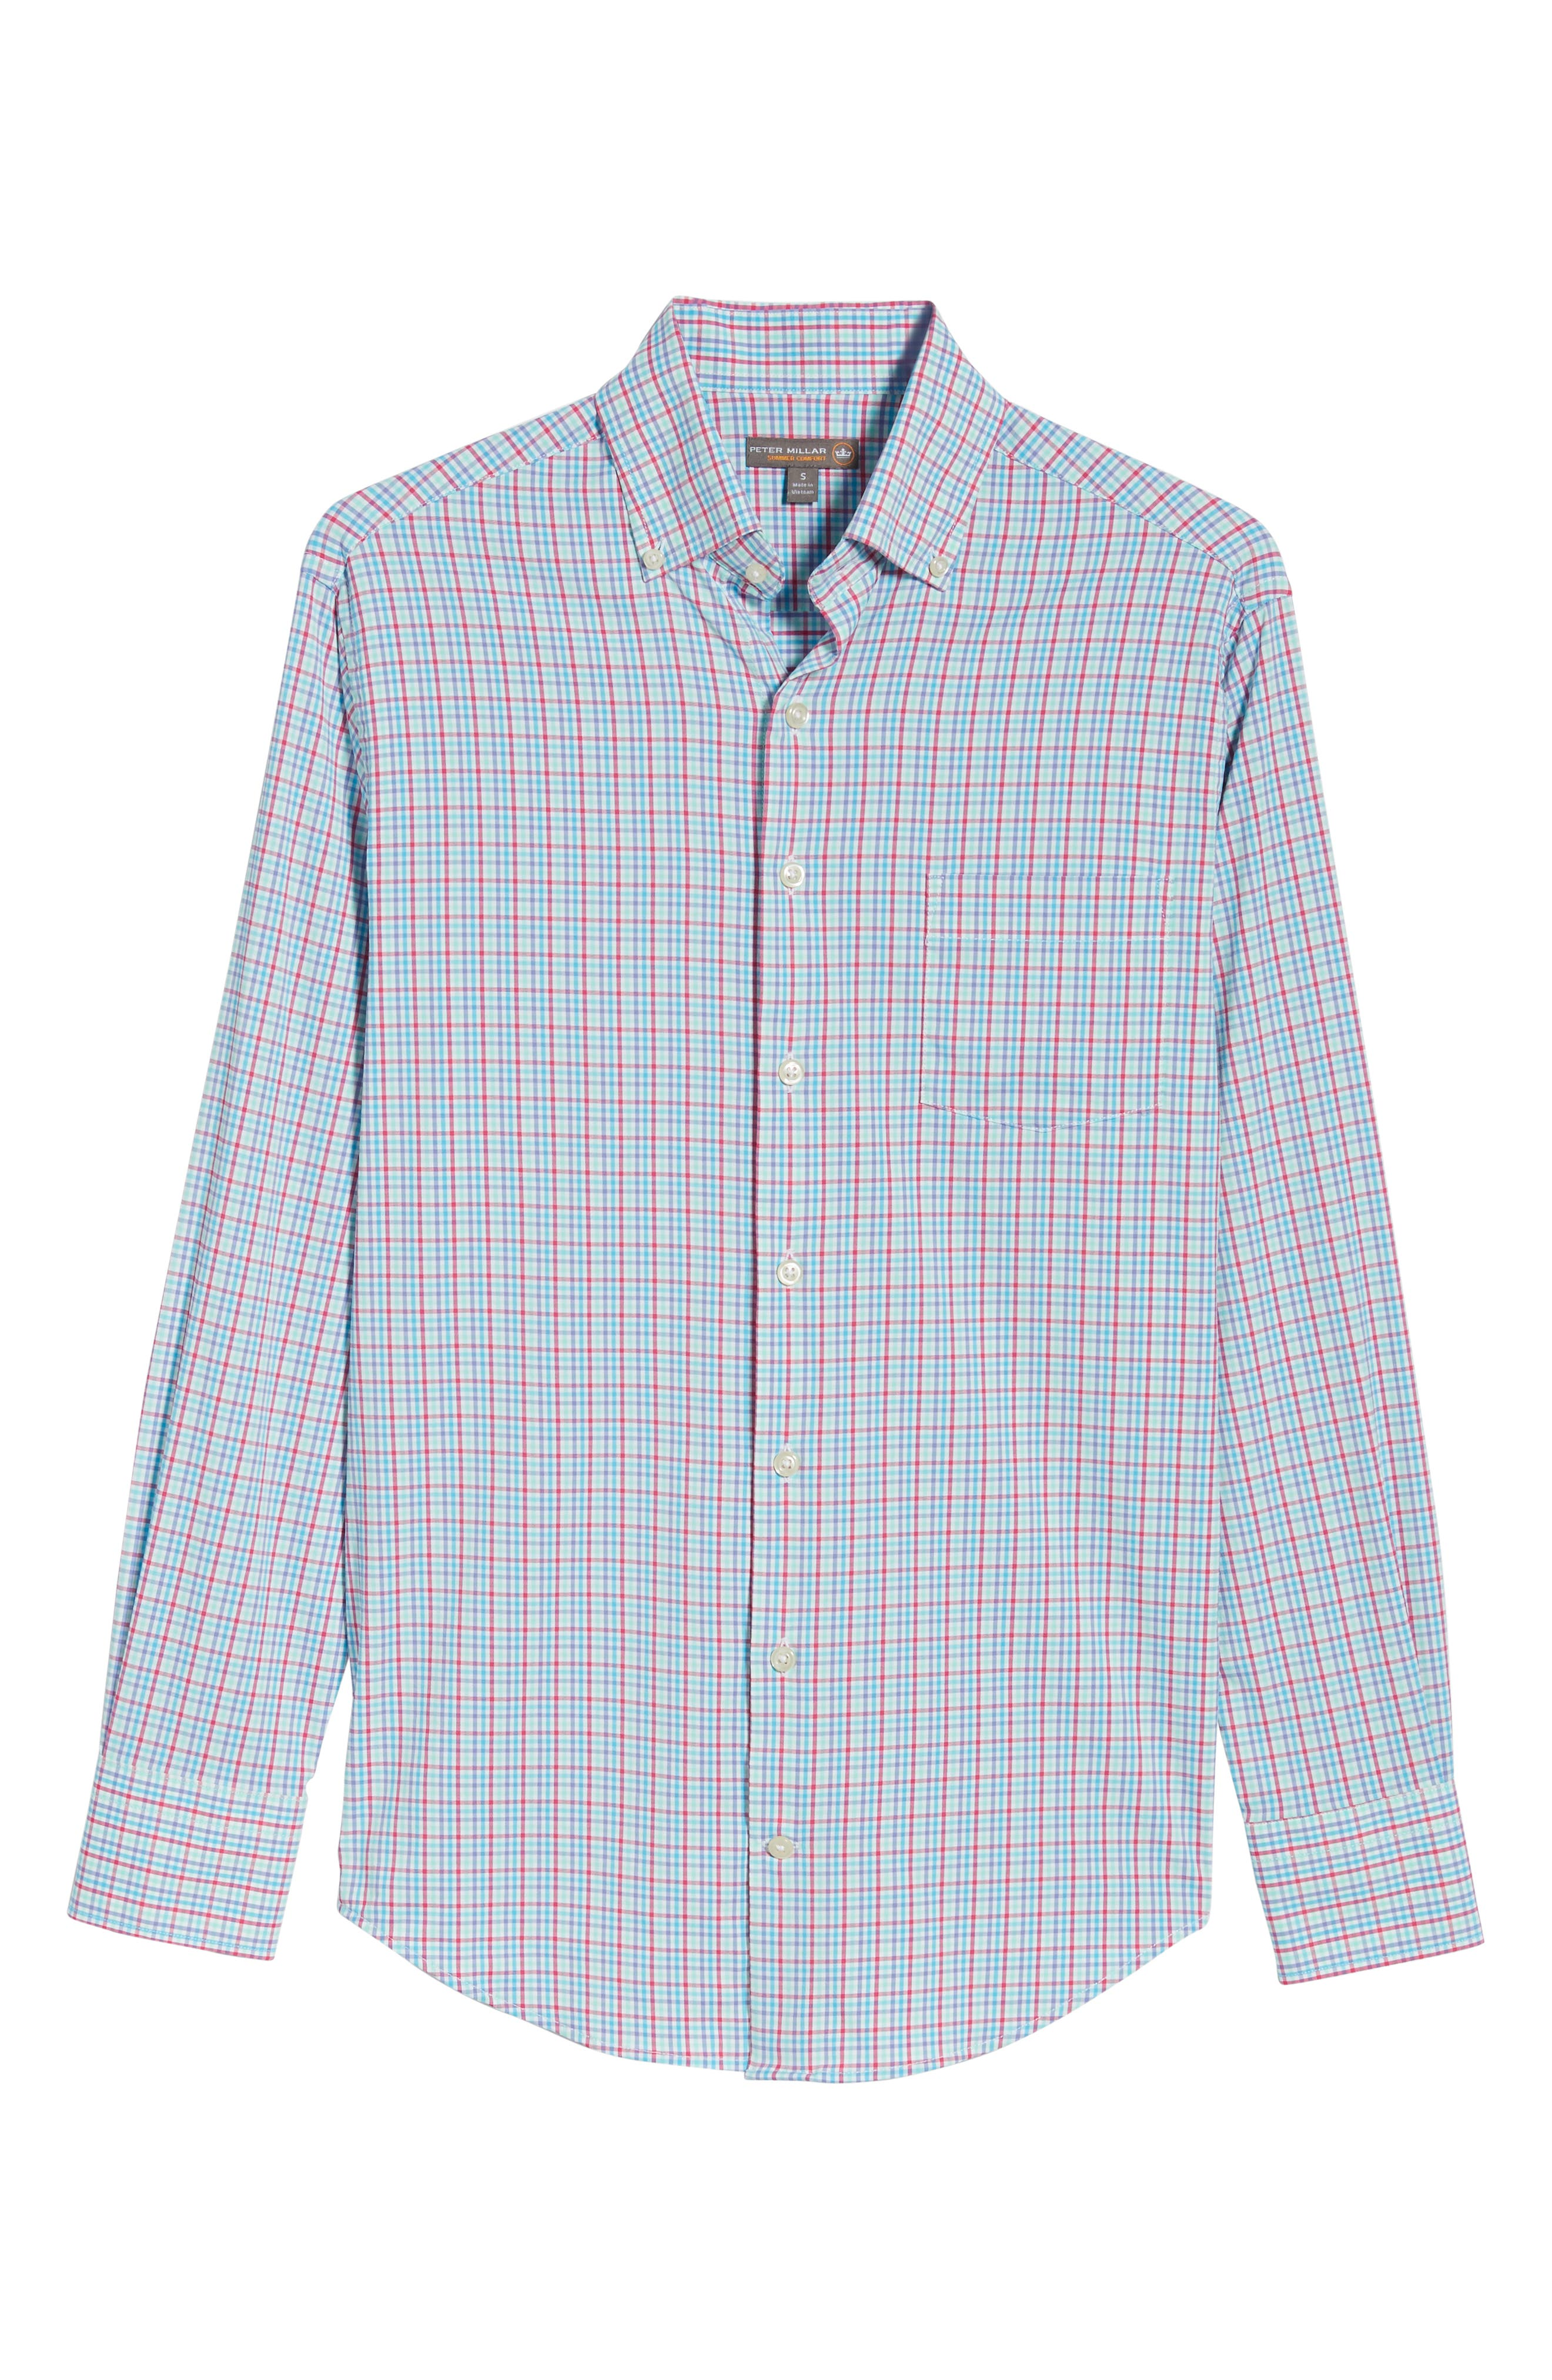 PETER MILLAR,                             Smedes Regular Fit Check Performance Sport Shirt,                             Alternate thumbnail 6, color,                             100